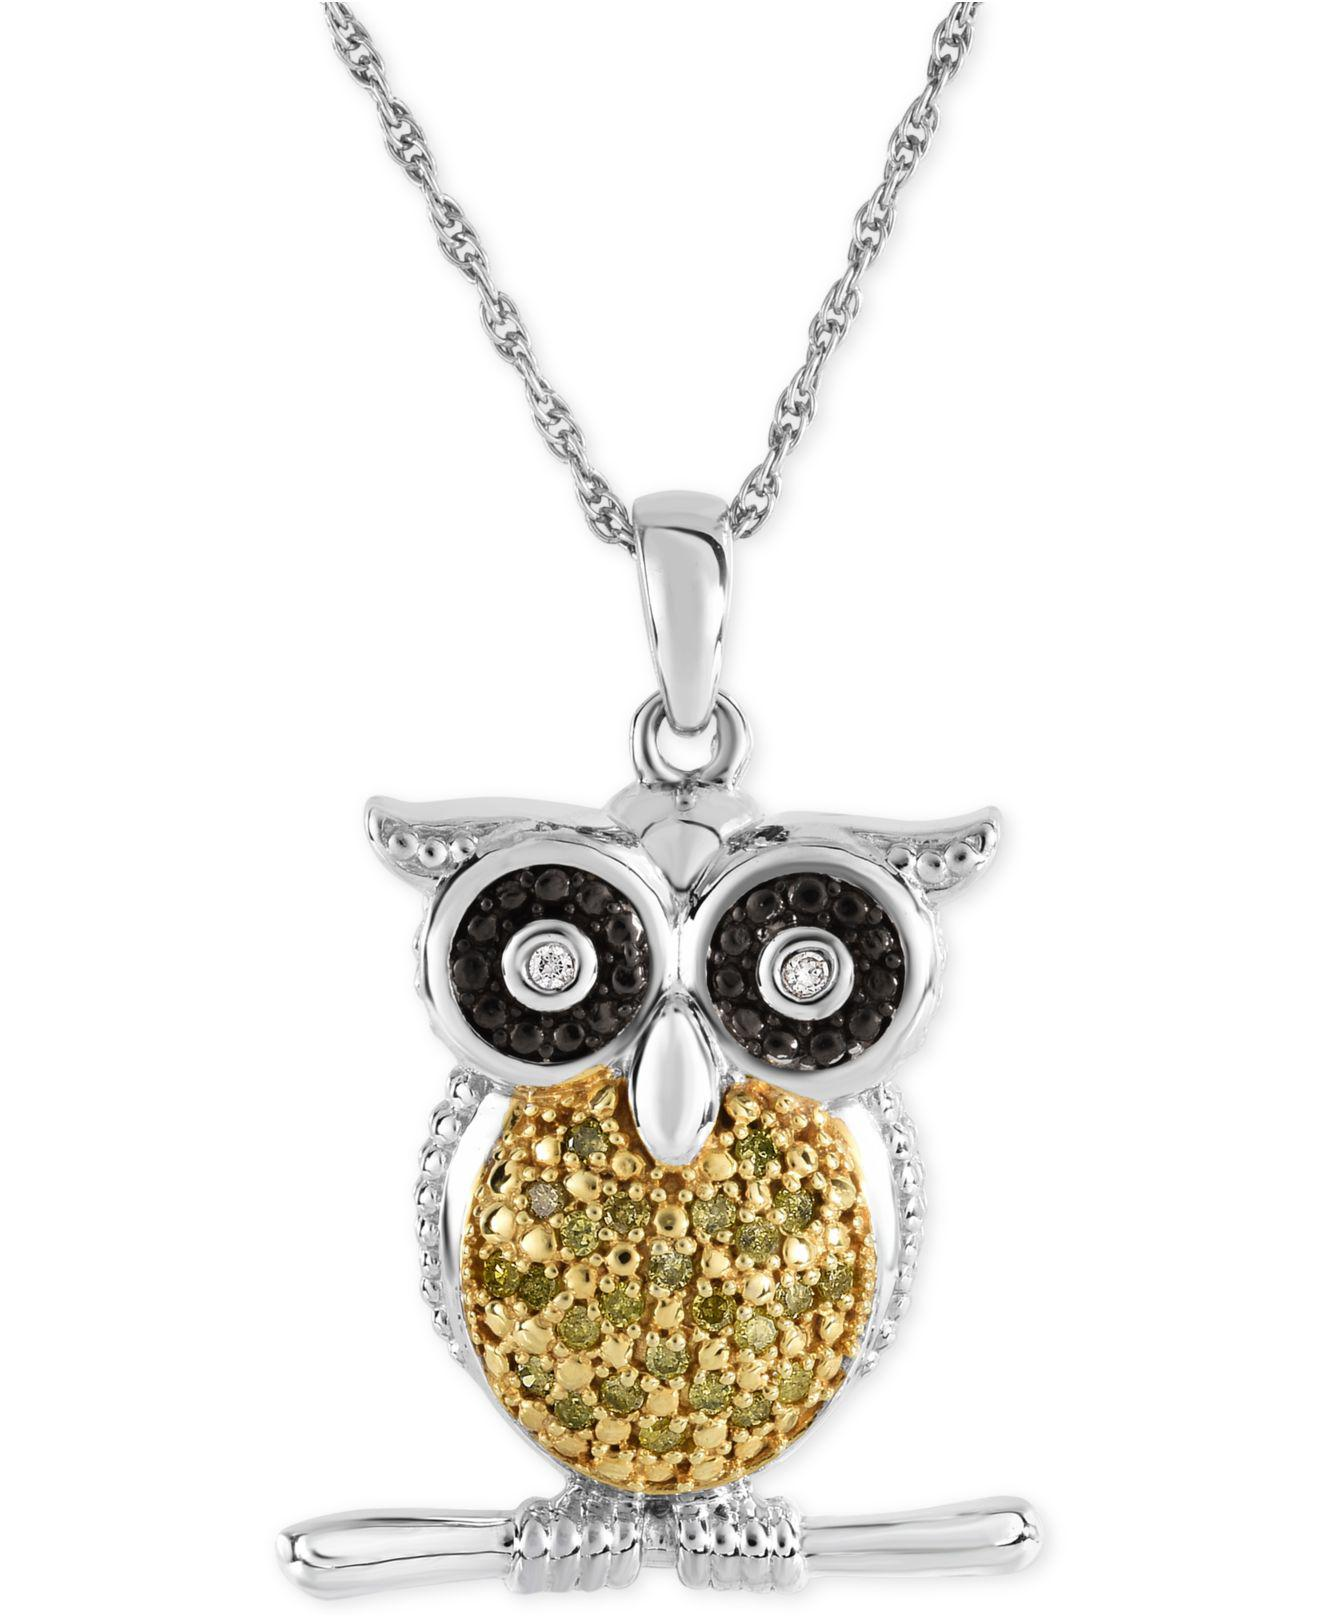 teal sapphire necklace hi owl res rickis burnished pendant silver